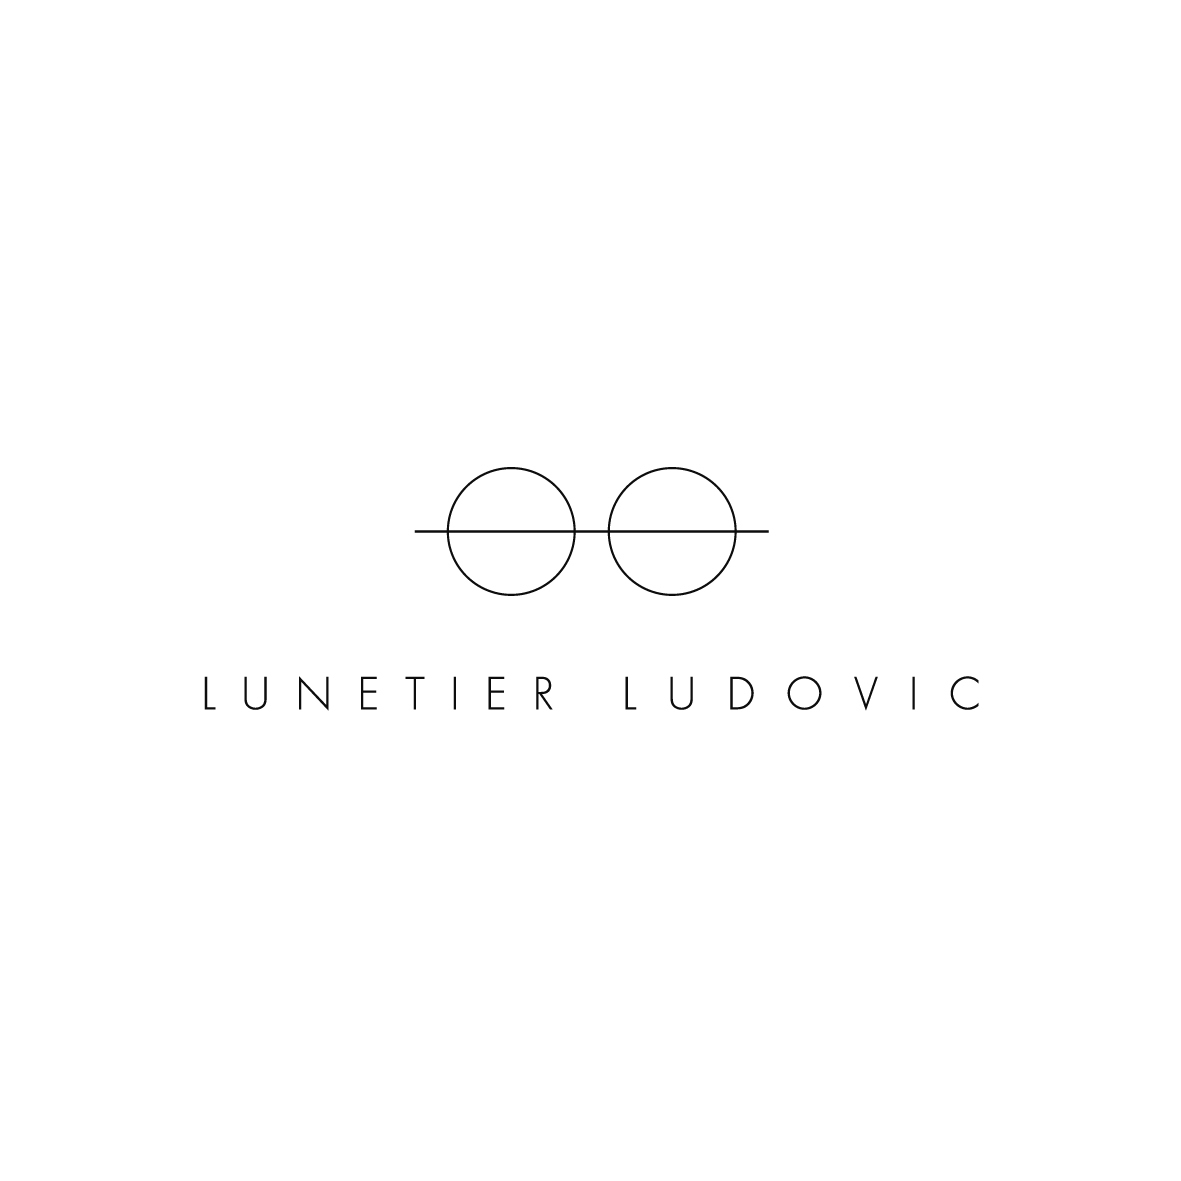 Lunetier Ludovic